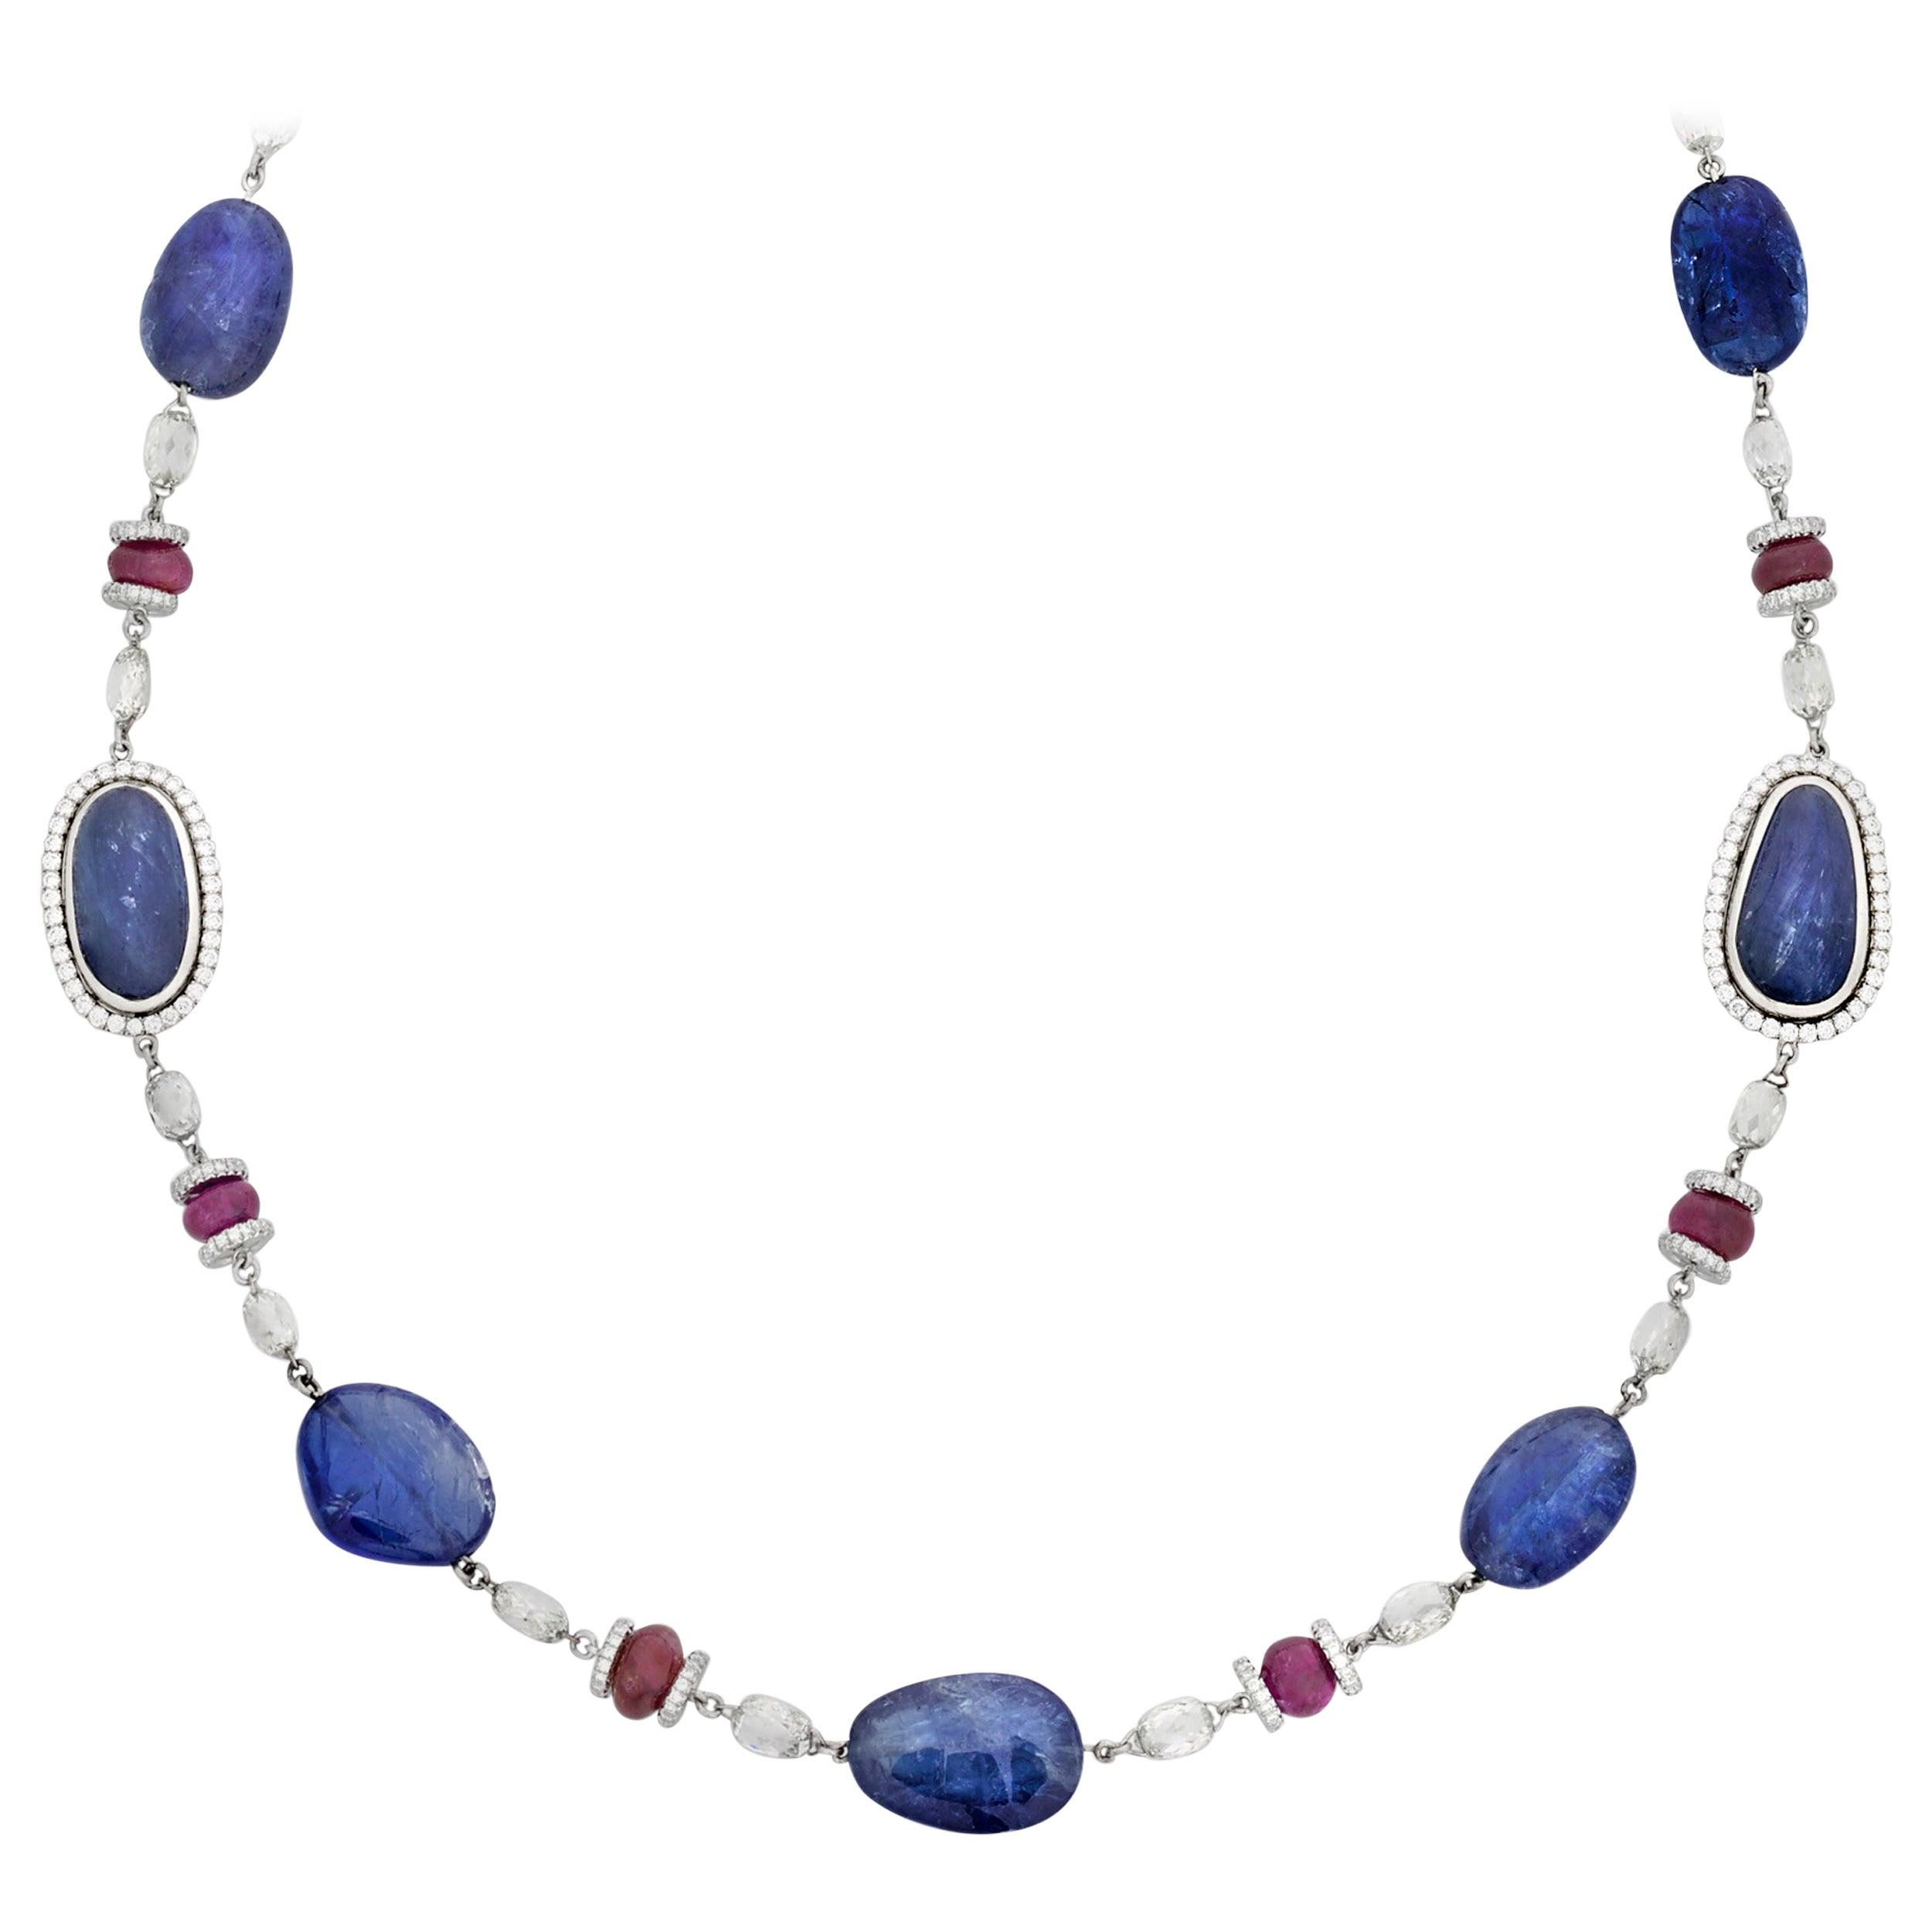 Cabochon Sapphire and Ruby Necklace, 141.55 Carat